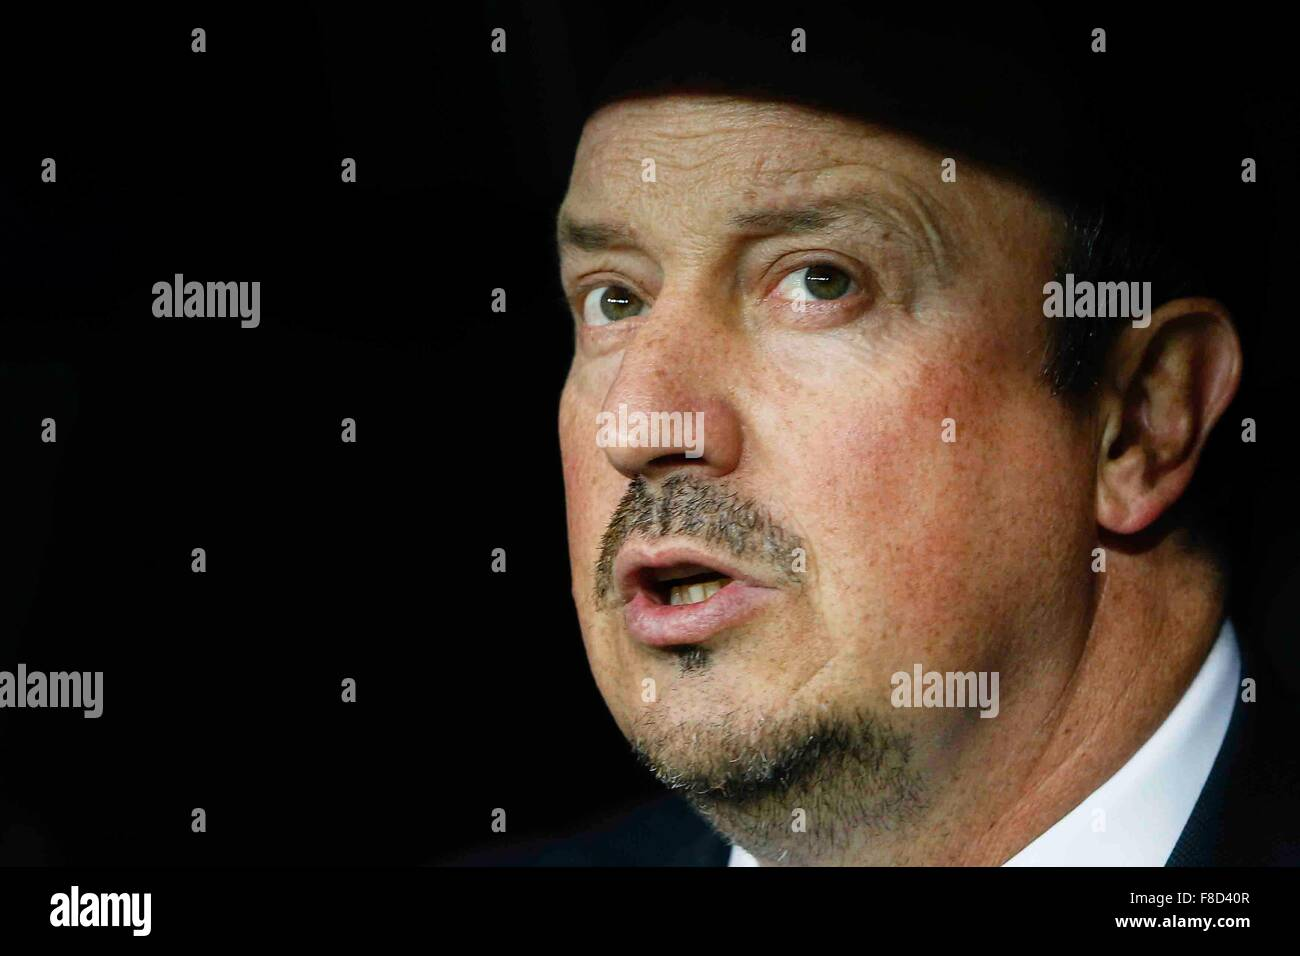 madrid, spain. 08th dec, 2015. rafa benitez coach of real madrid